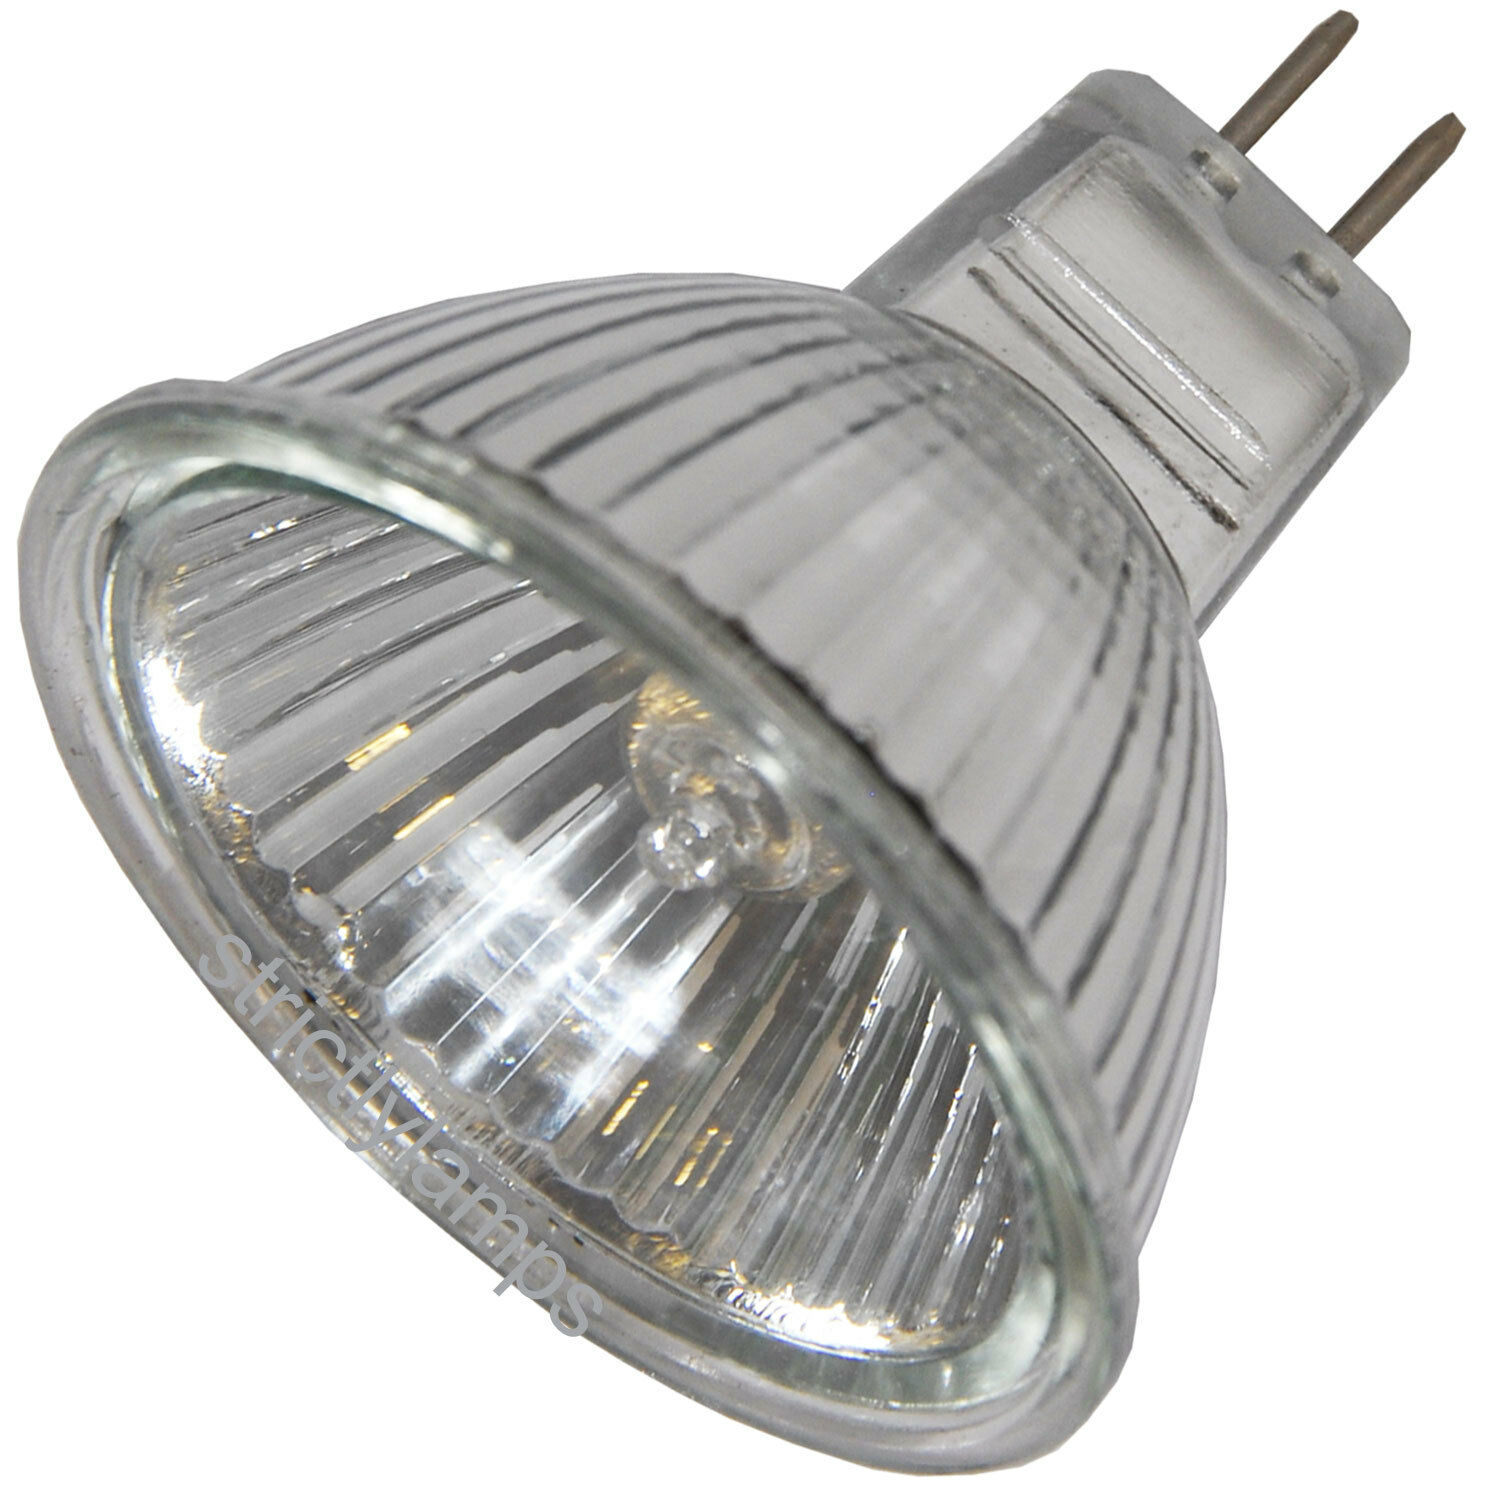 6 X Mr16 50w Halogen Light Bulbs 12v Free Deliverey Ebay